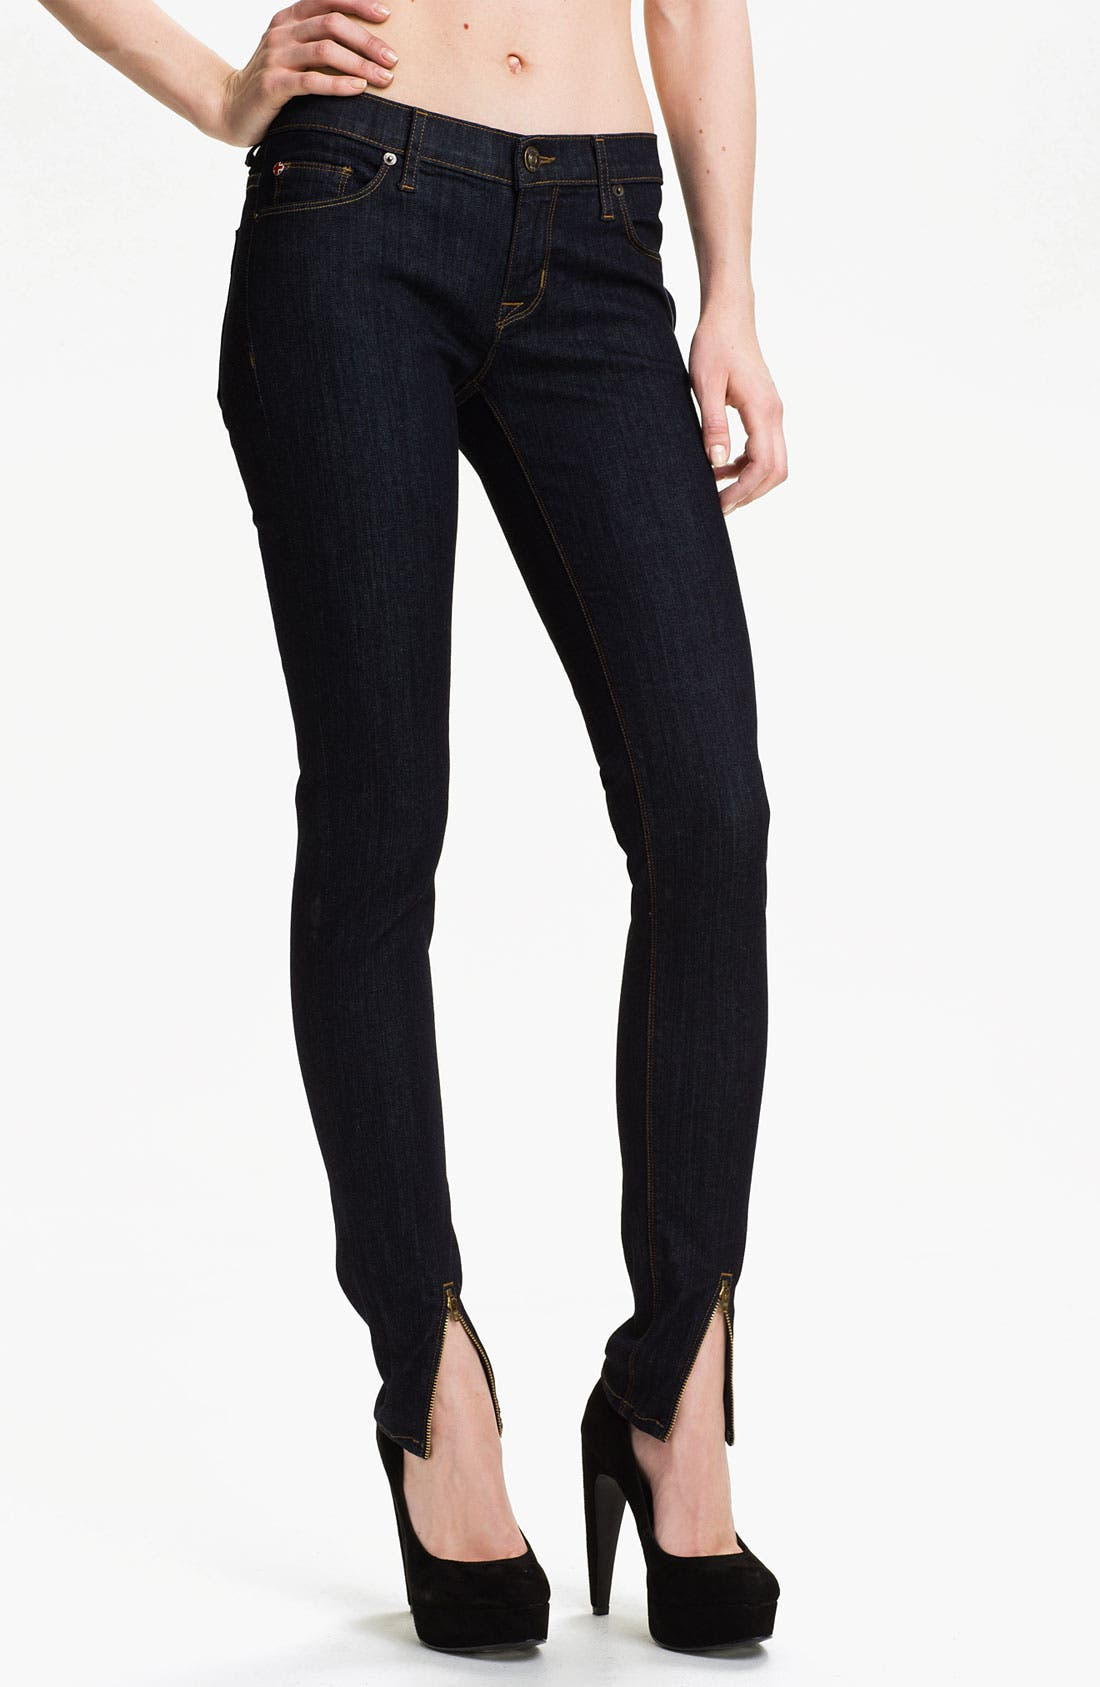 Main Image - Hudson Jeans 'Juliette' Ankle Zip Super Skinny Jeans (Rinse)